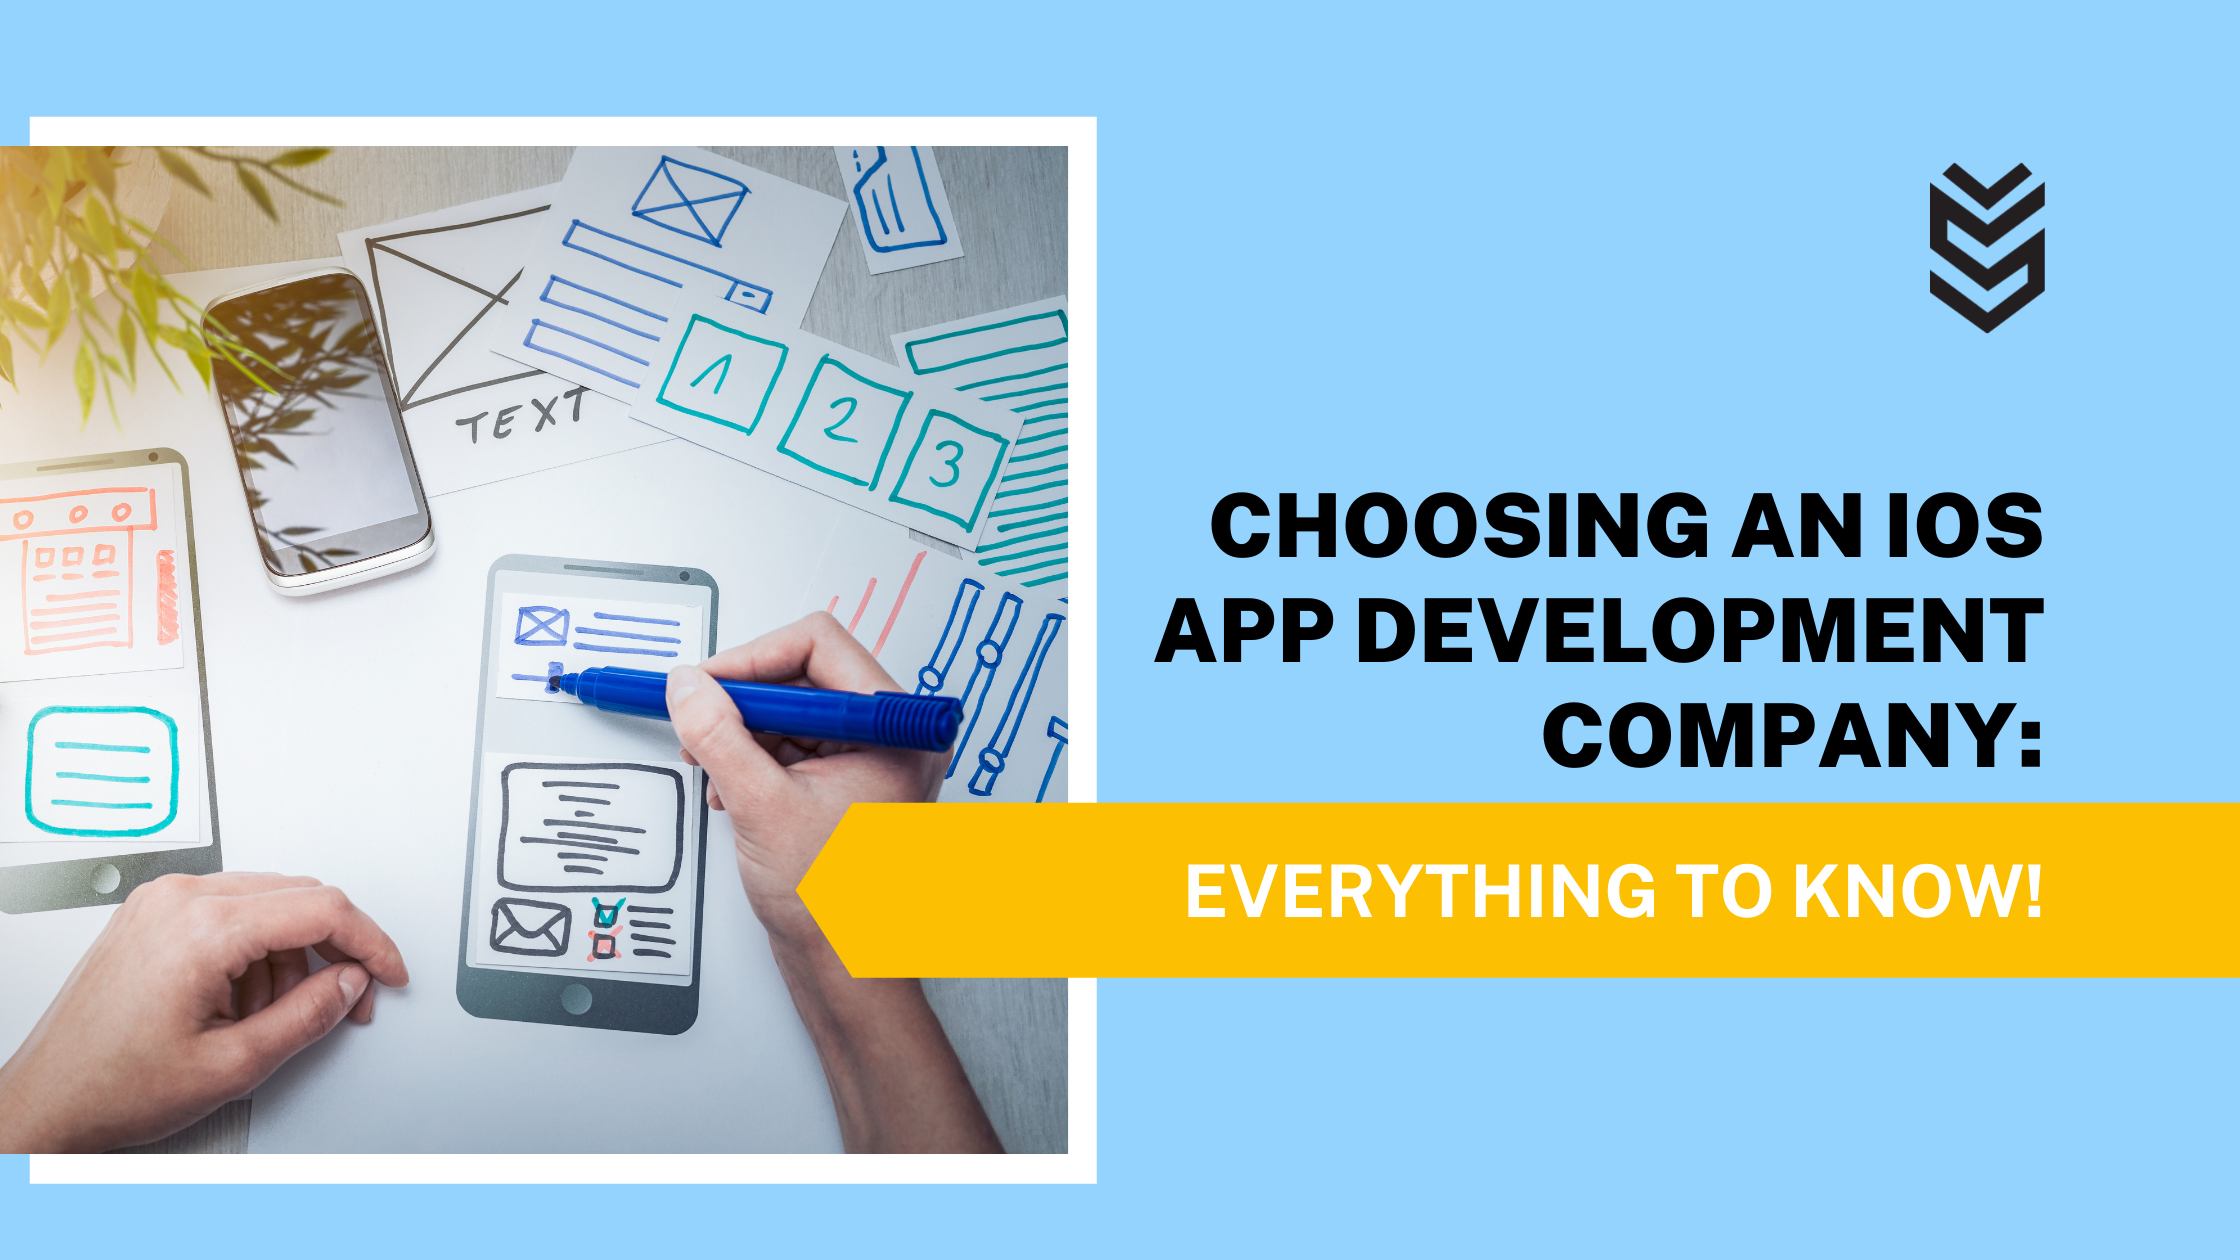 CHOOSING AN iOS APP DEVELOPMENT COMPANY: EVERYTHING TO KNOW